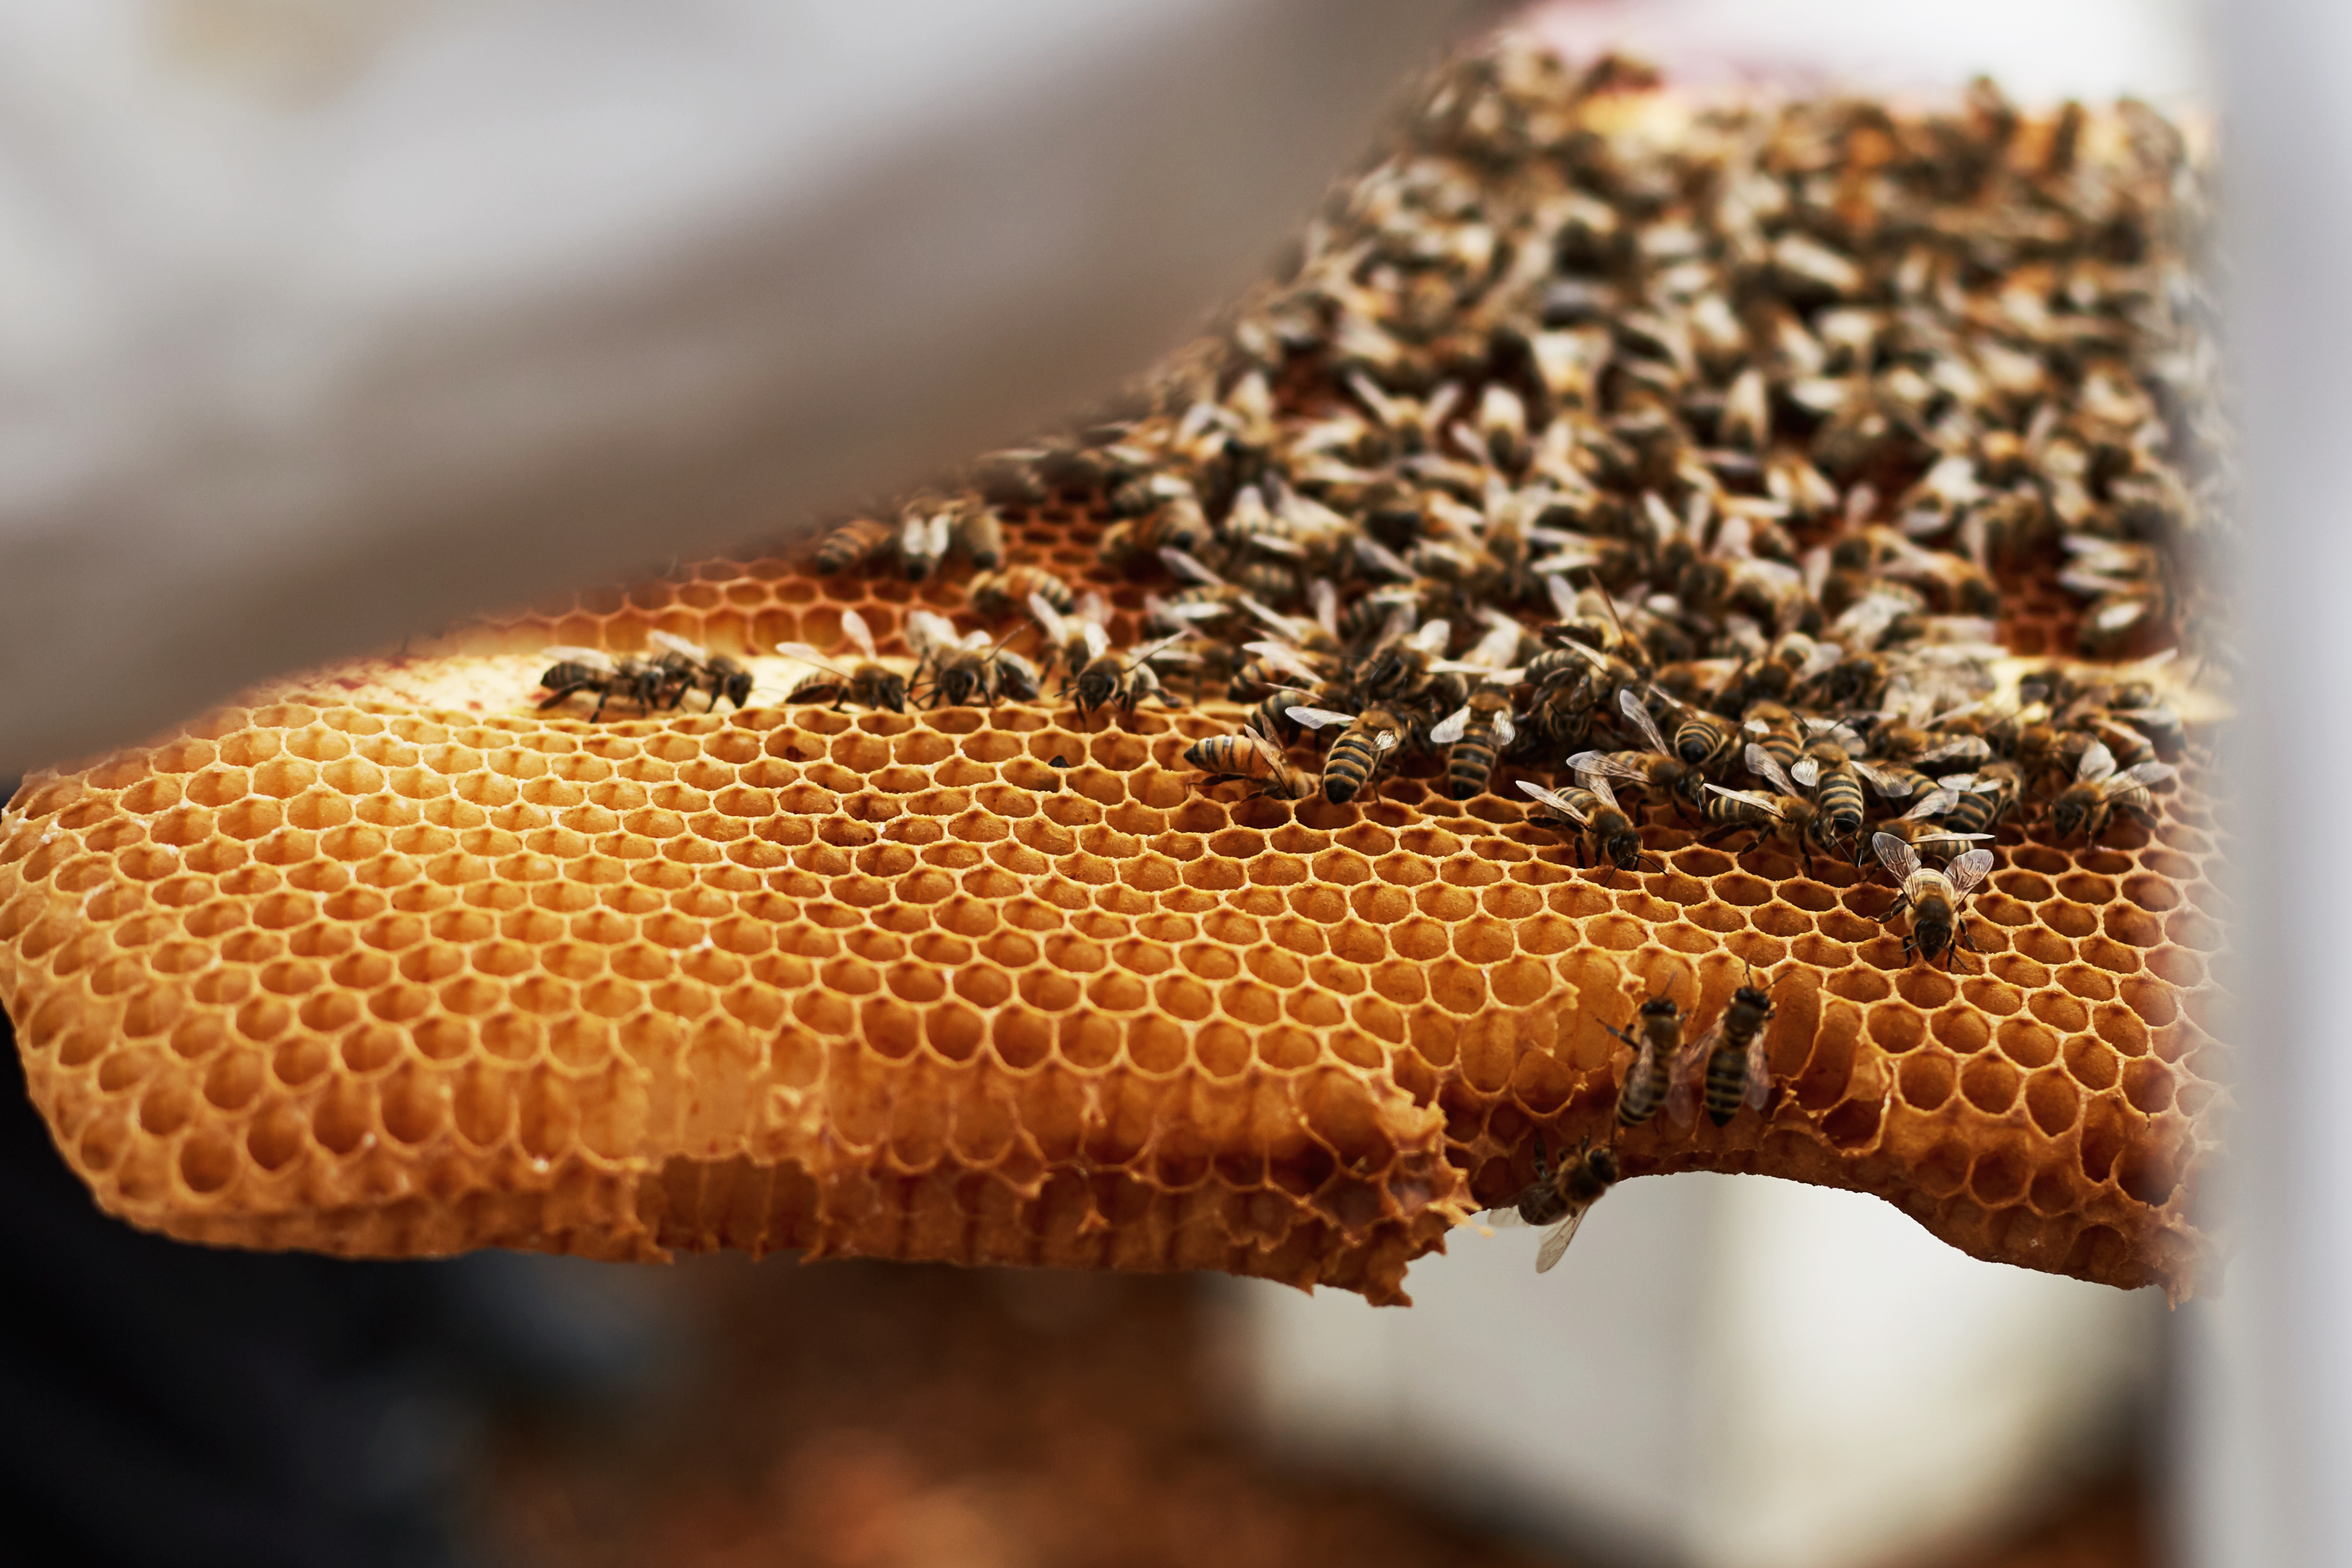 A close up of bees sitting on a honeycomb.